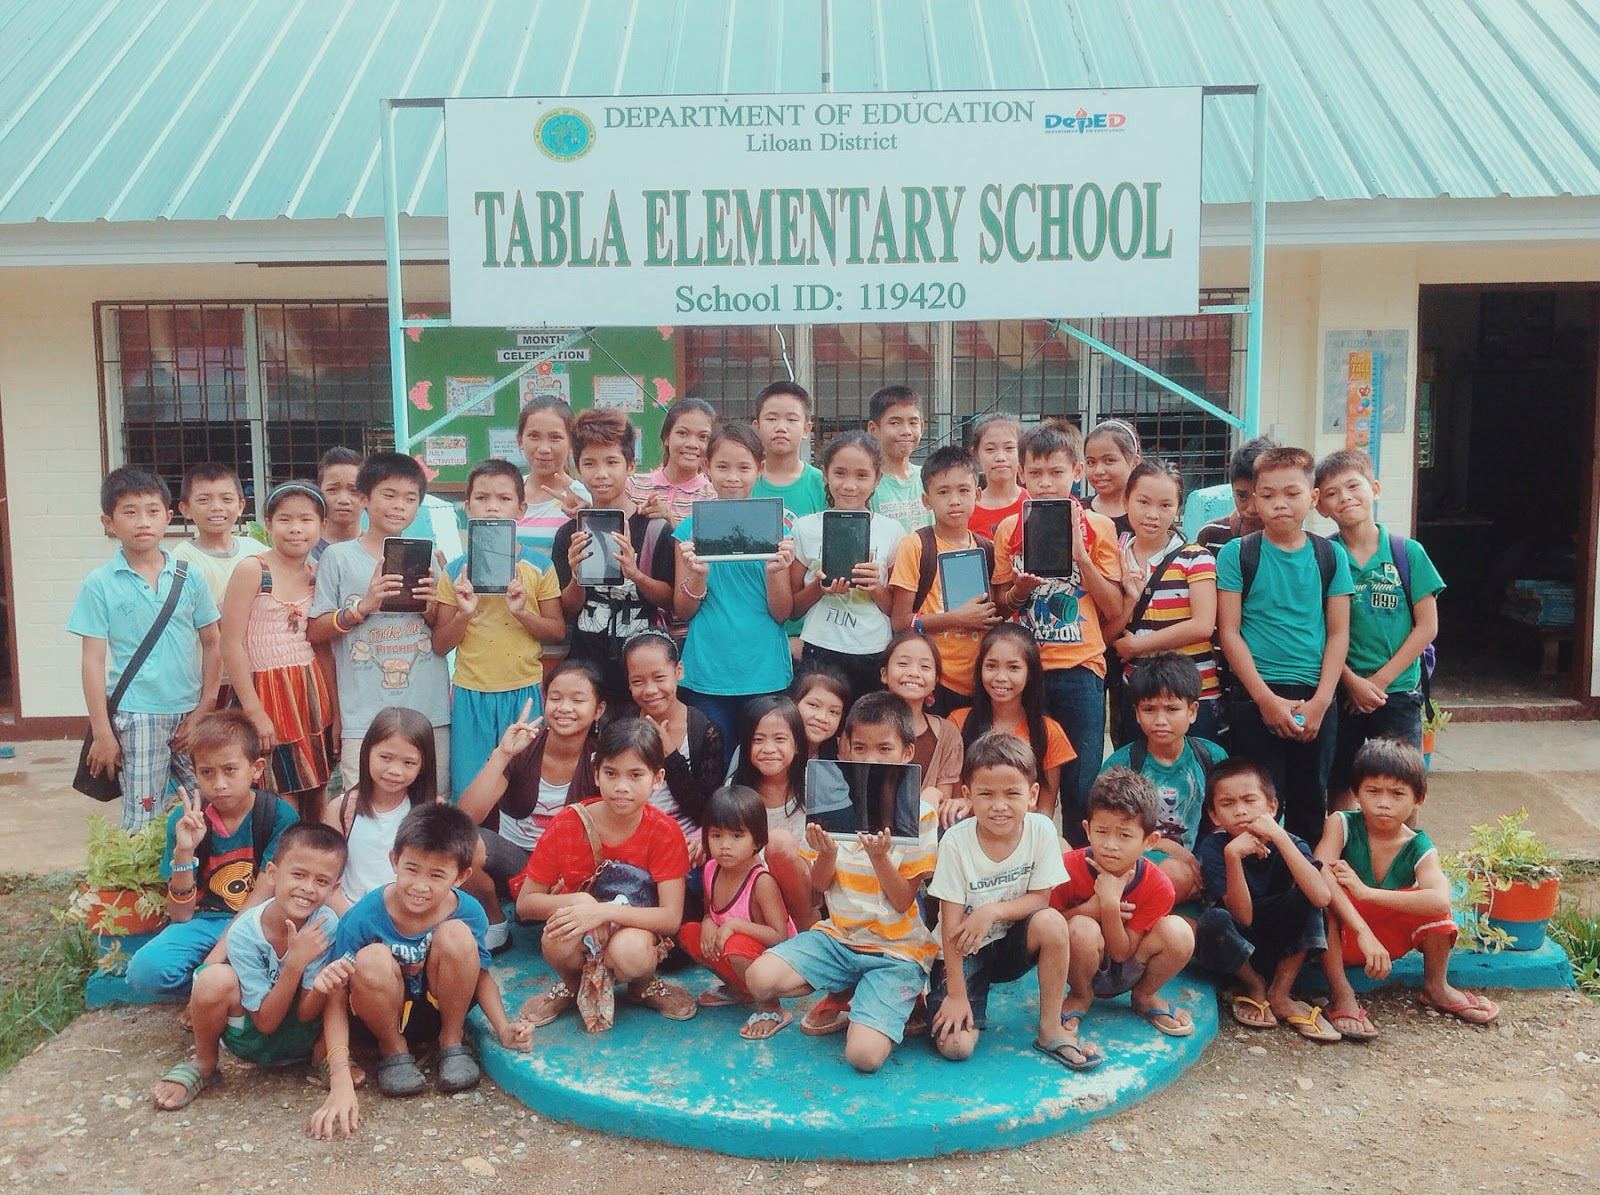 Lenovo donates devices to Tabla Elementary School in Cebu through Project LIBRO